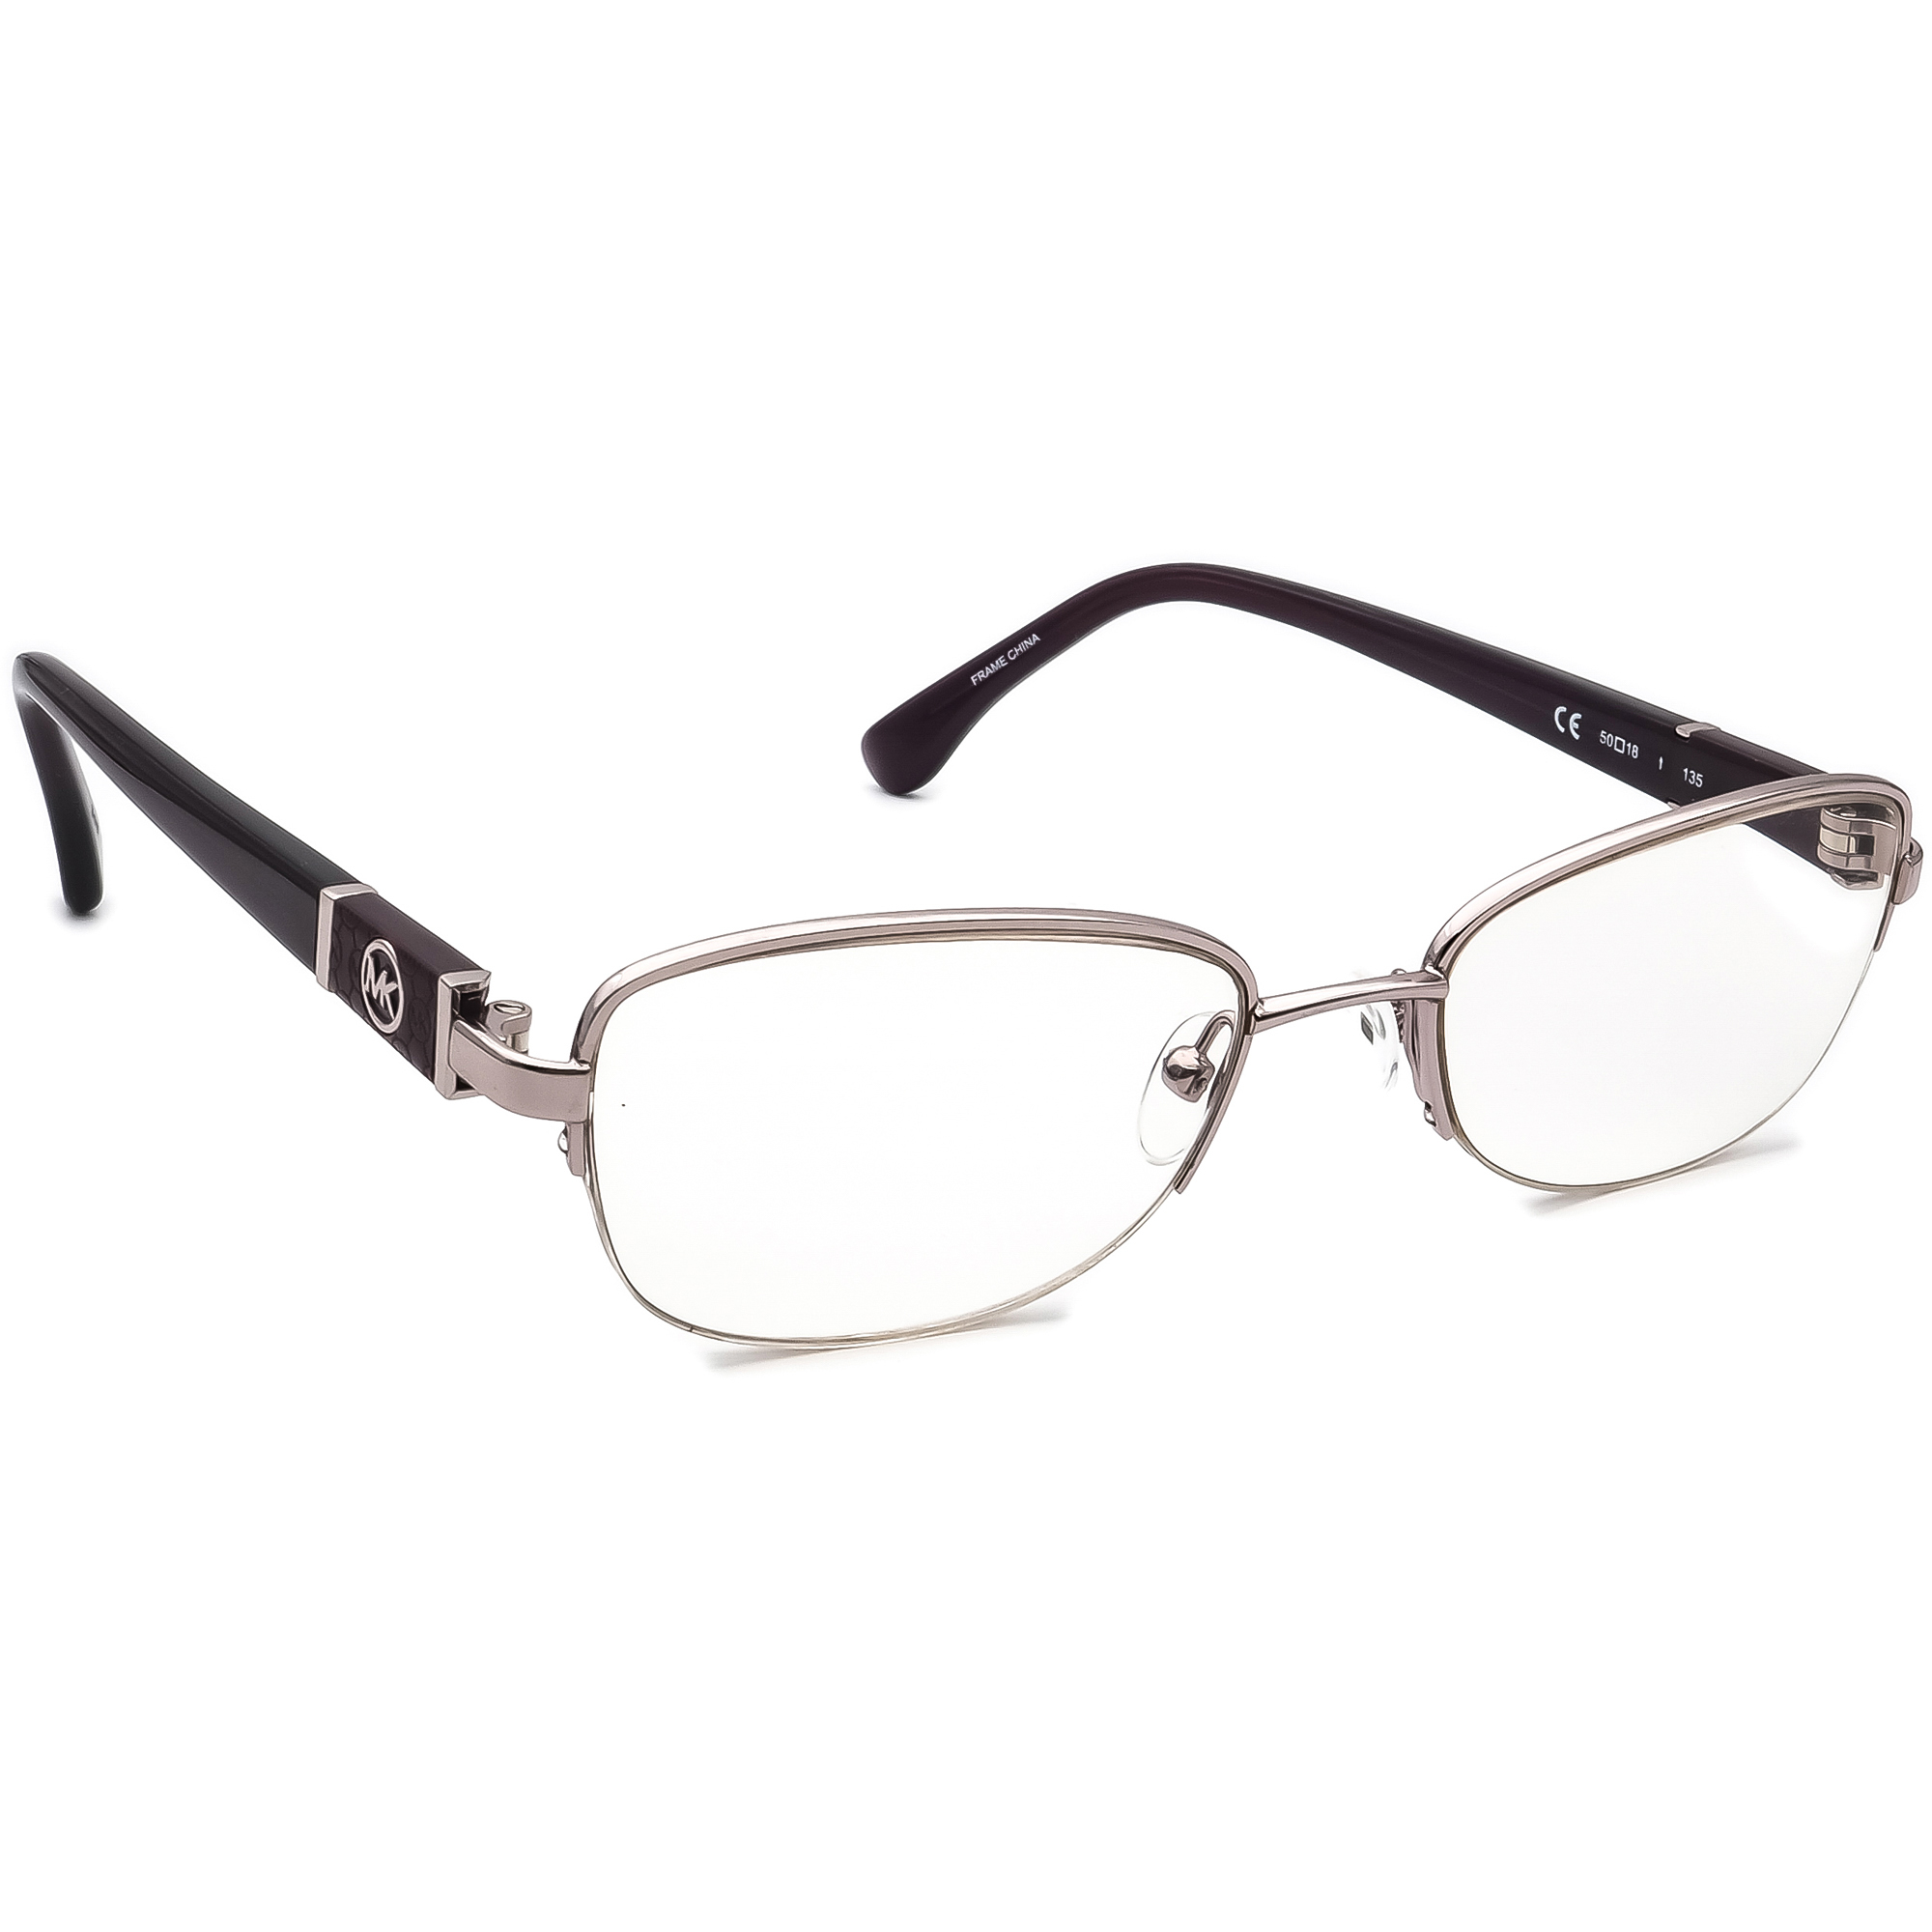 Michael Kors Eyeglasses MK340 503 Purple Polish Half Rim Frame 50[]18 135